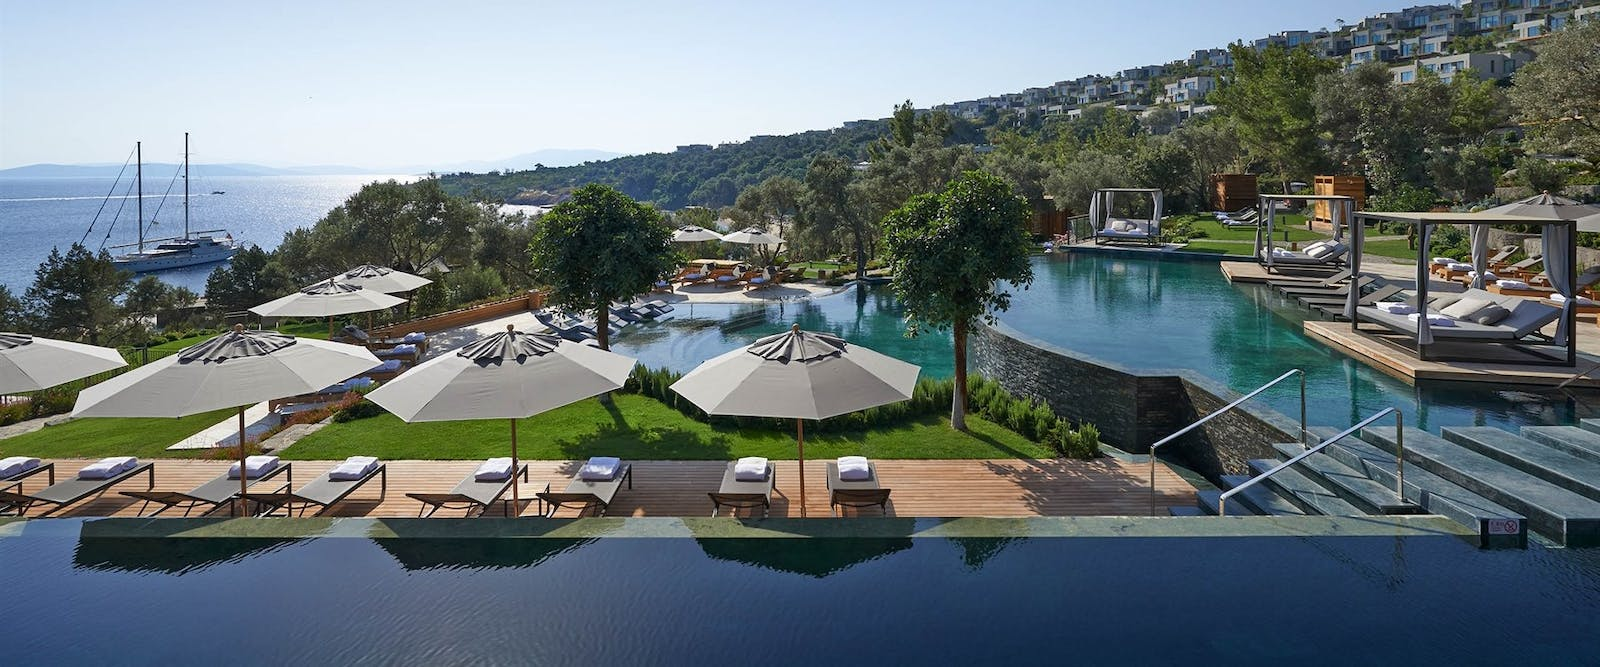 Main Pool at Mandarin Oriental Bodrum, Turkey